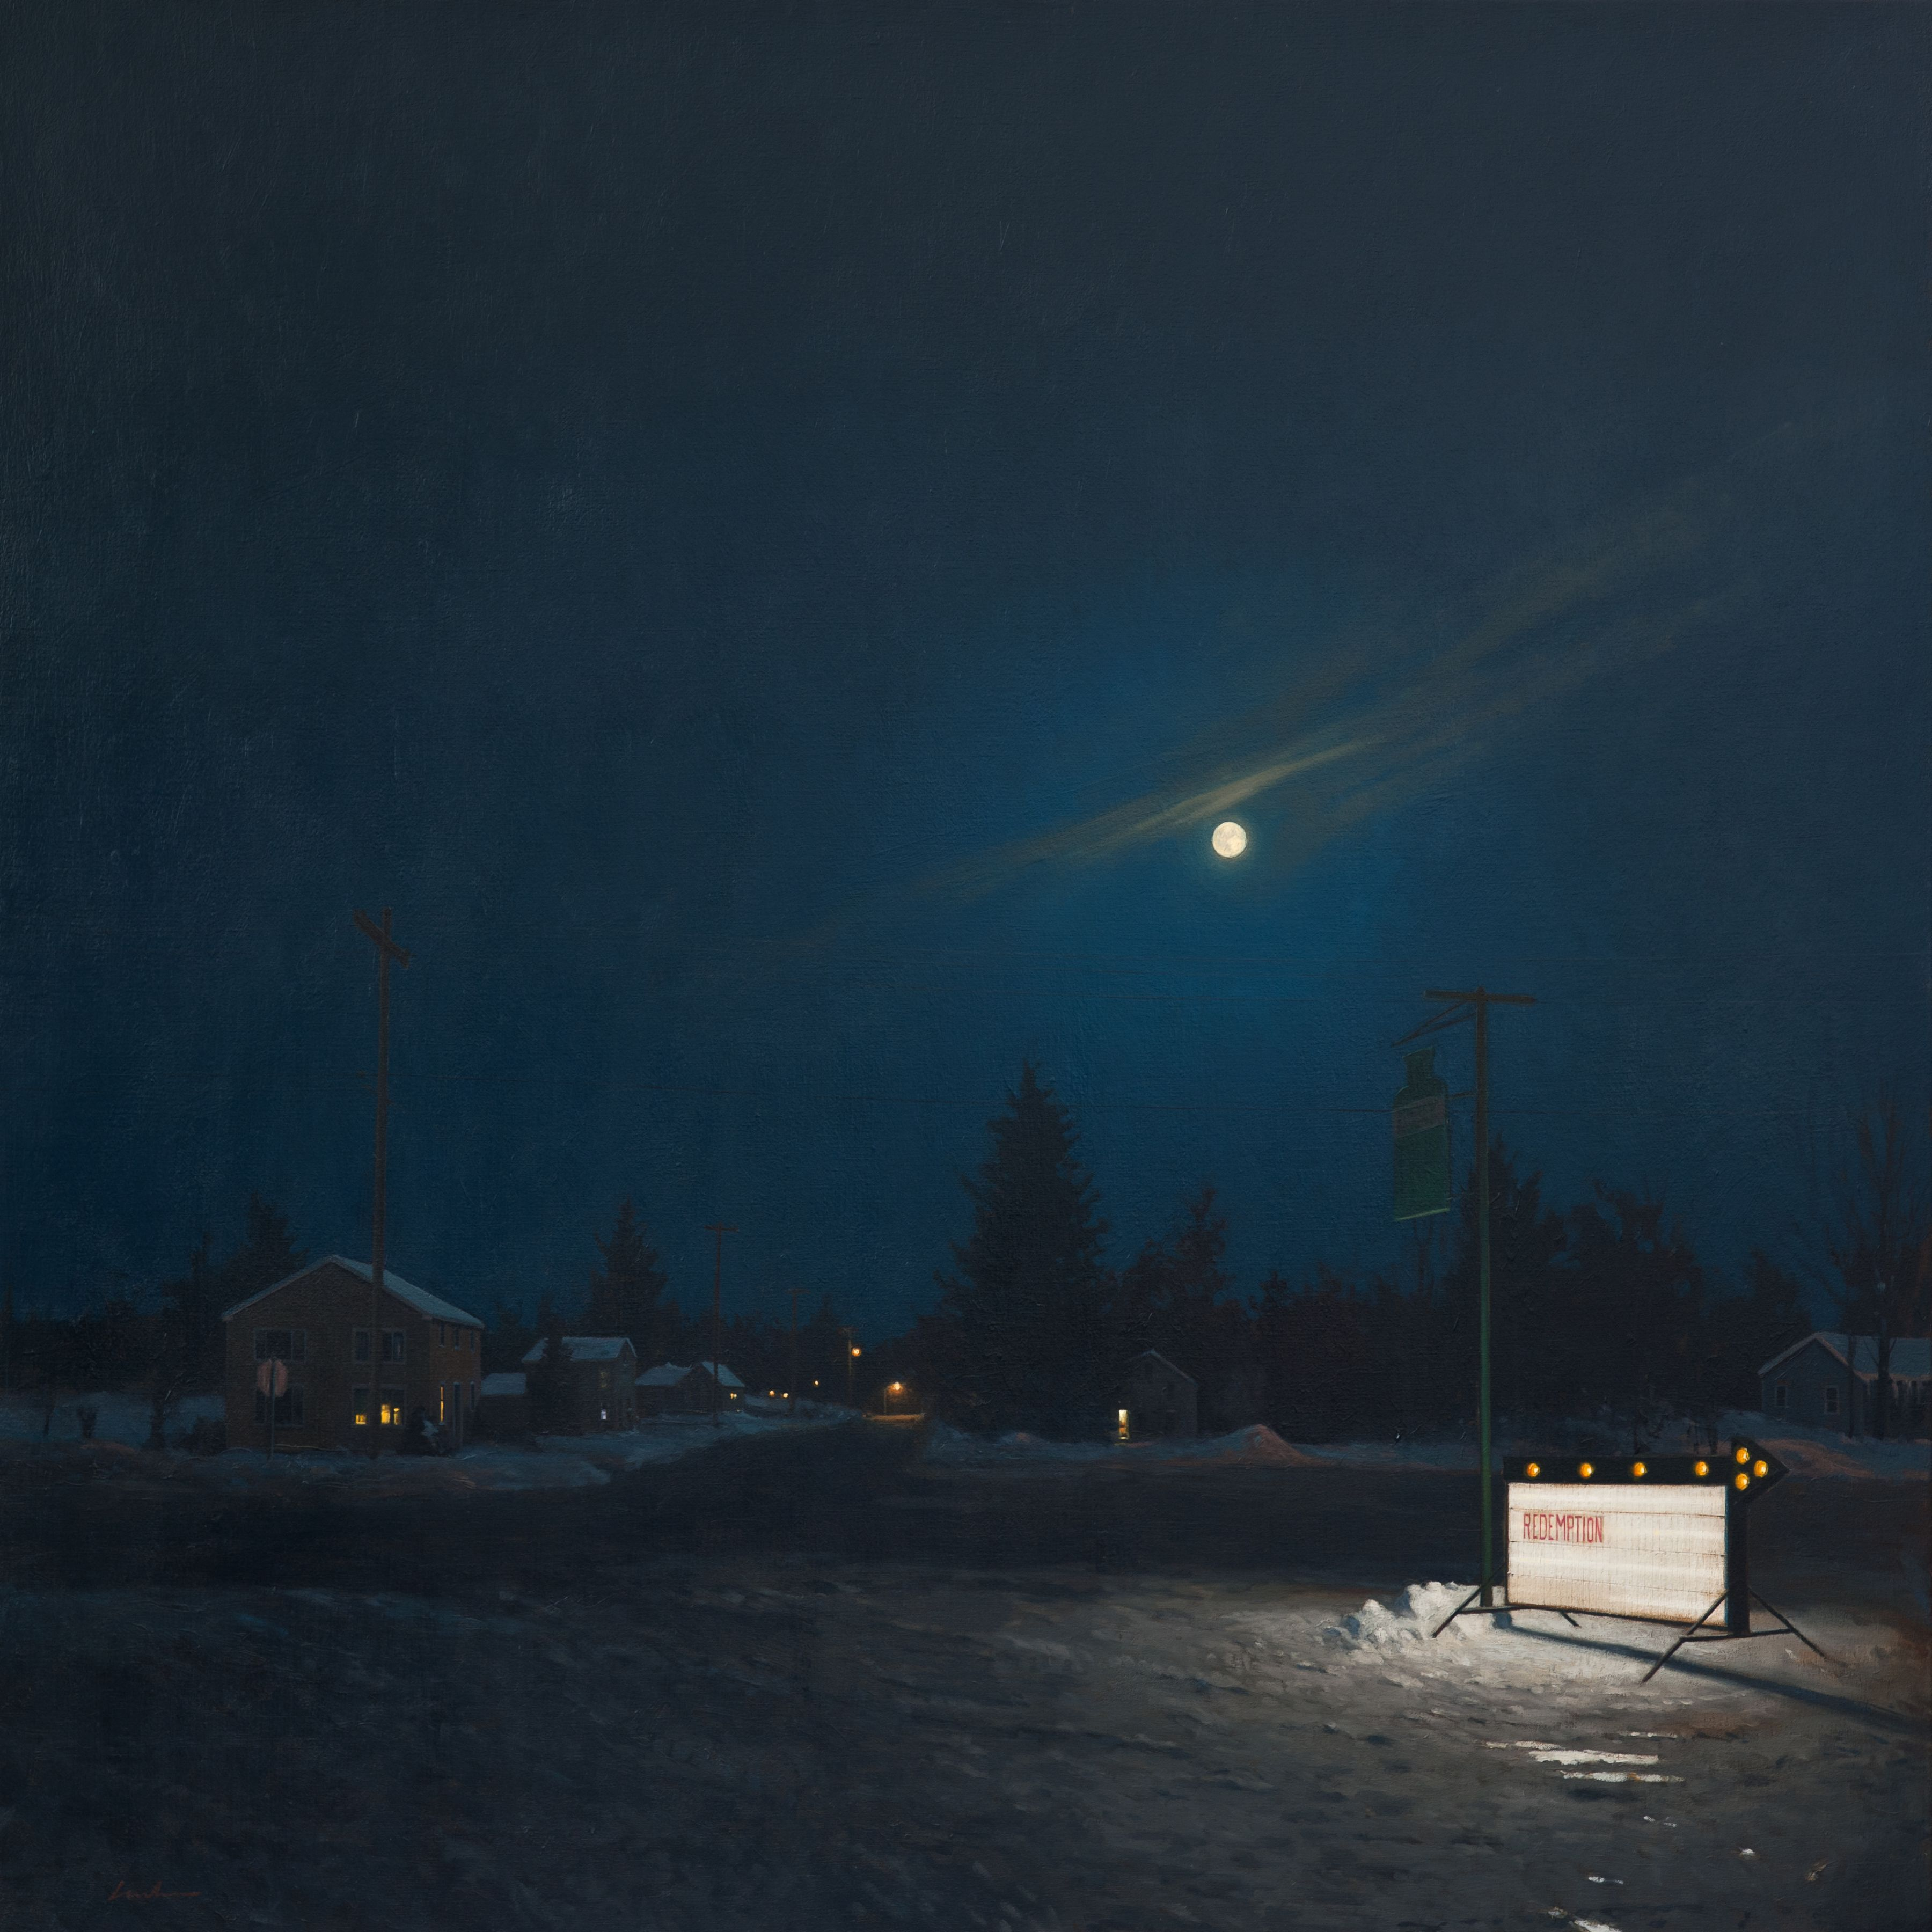 linden frederick, Redemption (SOLD), 2011, oil on linen, 45 x 45 inches